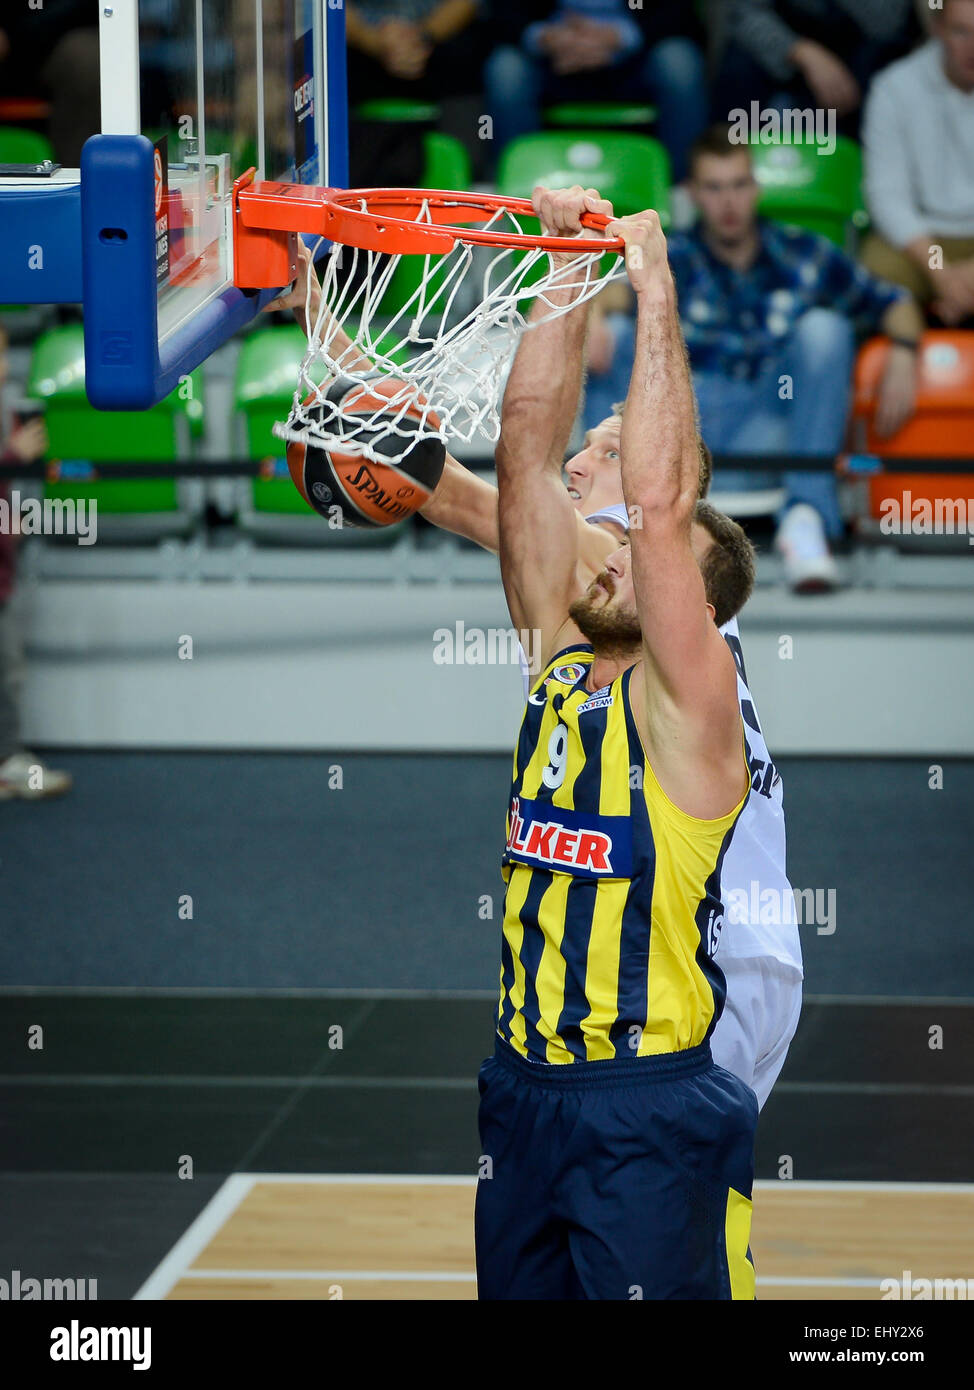 LUBIN, POLAND - OCTOBER 24, 2014: Semih Erden in action during the Euroleague basketball match - Stock Image